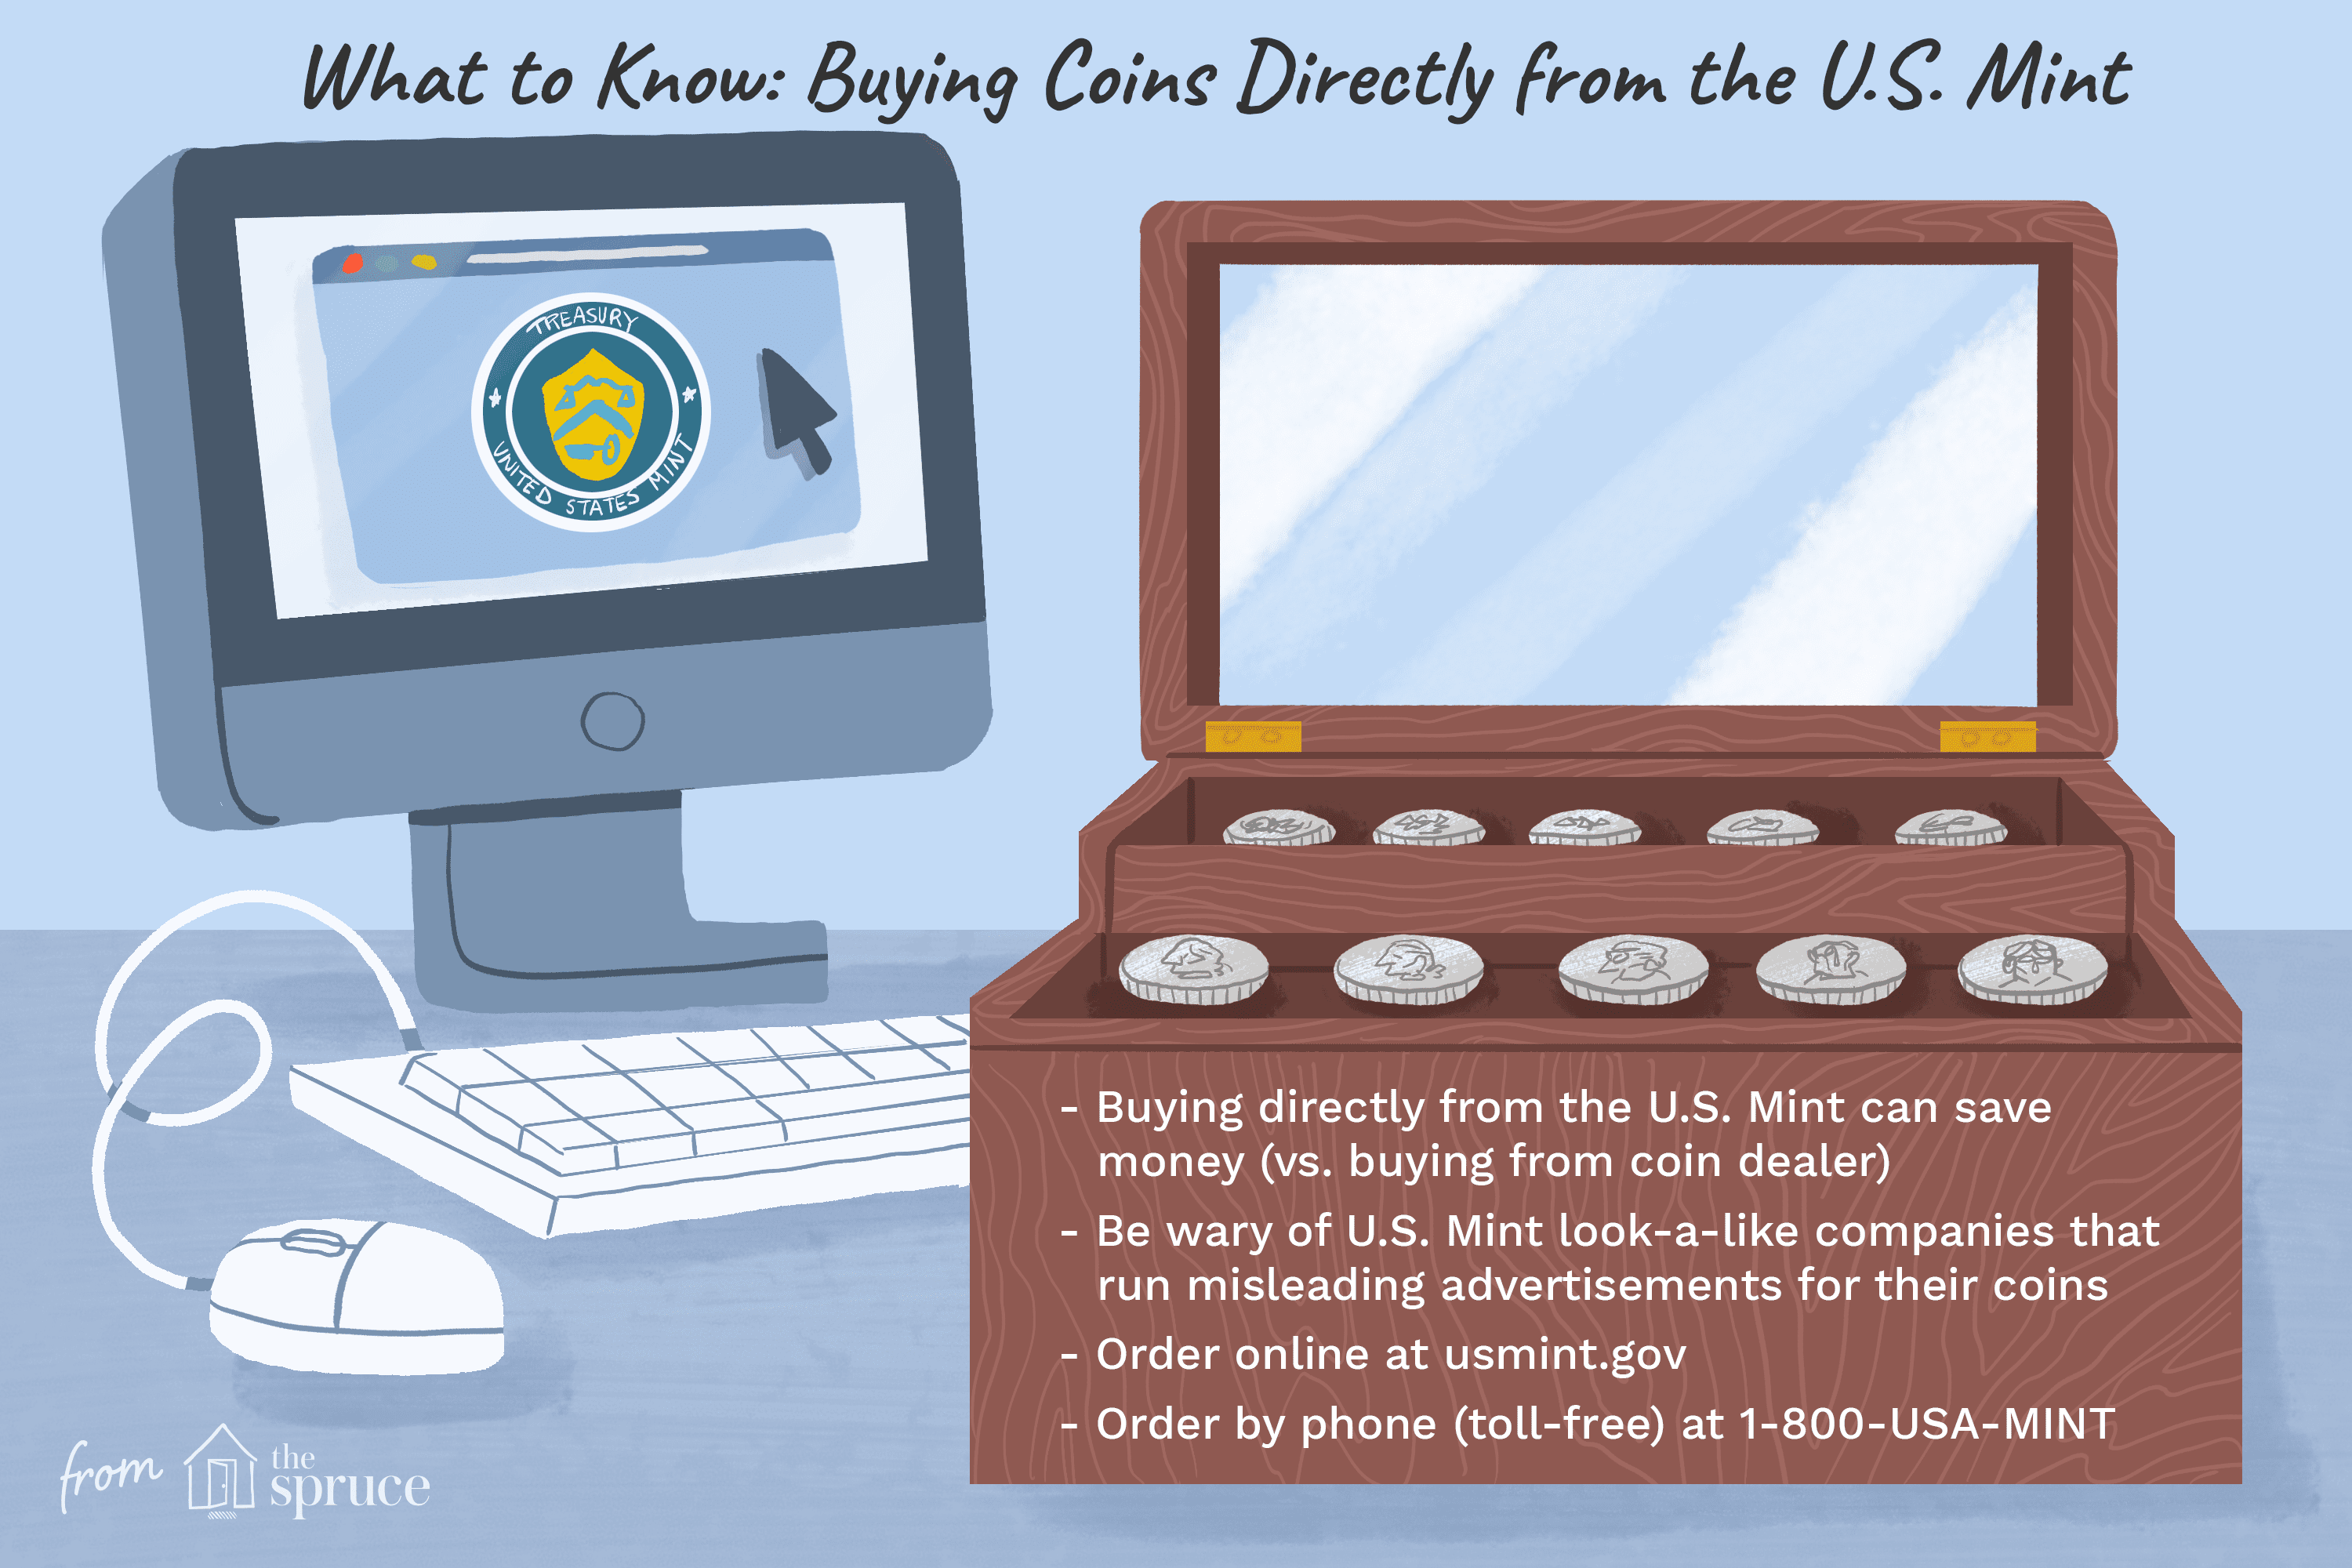 How to Buy Coins Directly from the US Mint